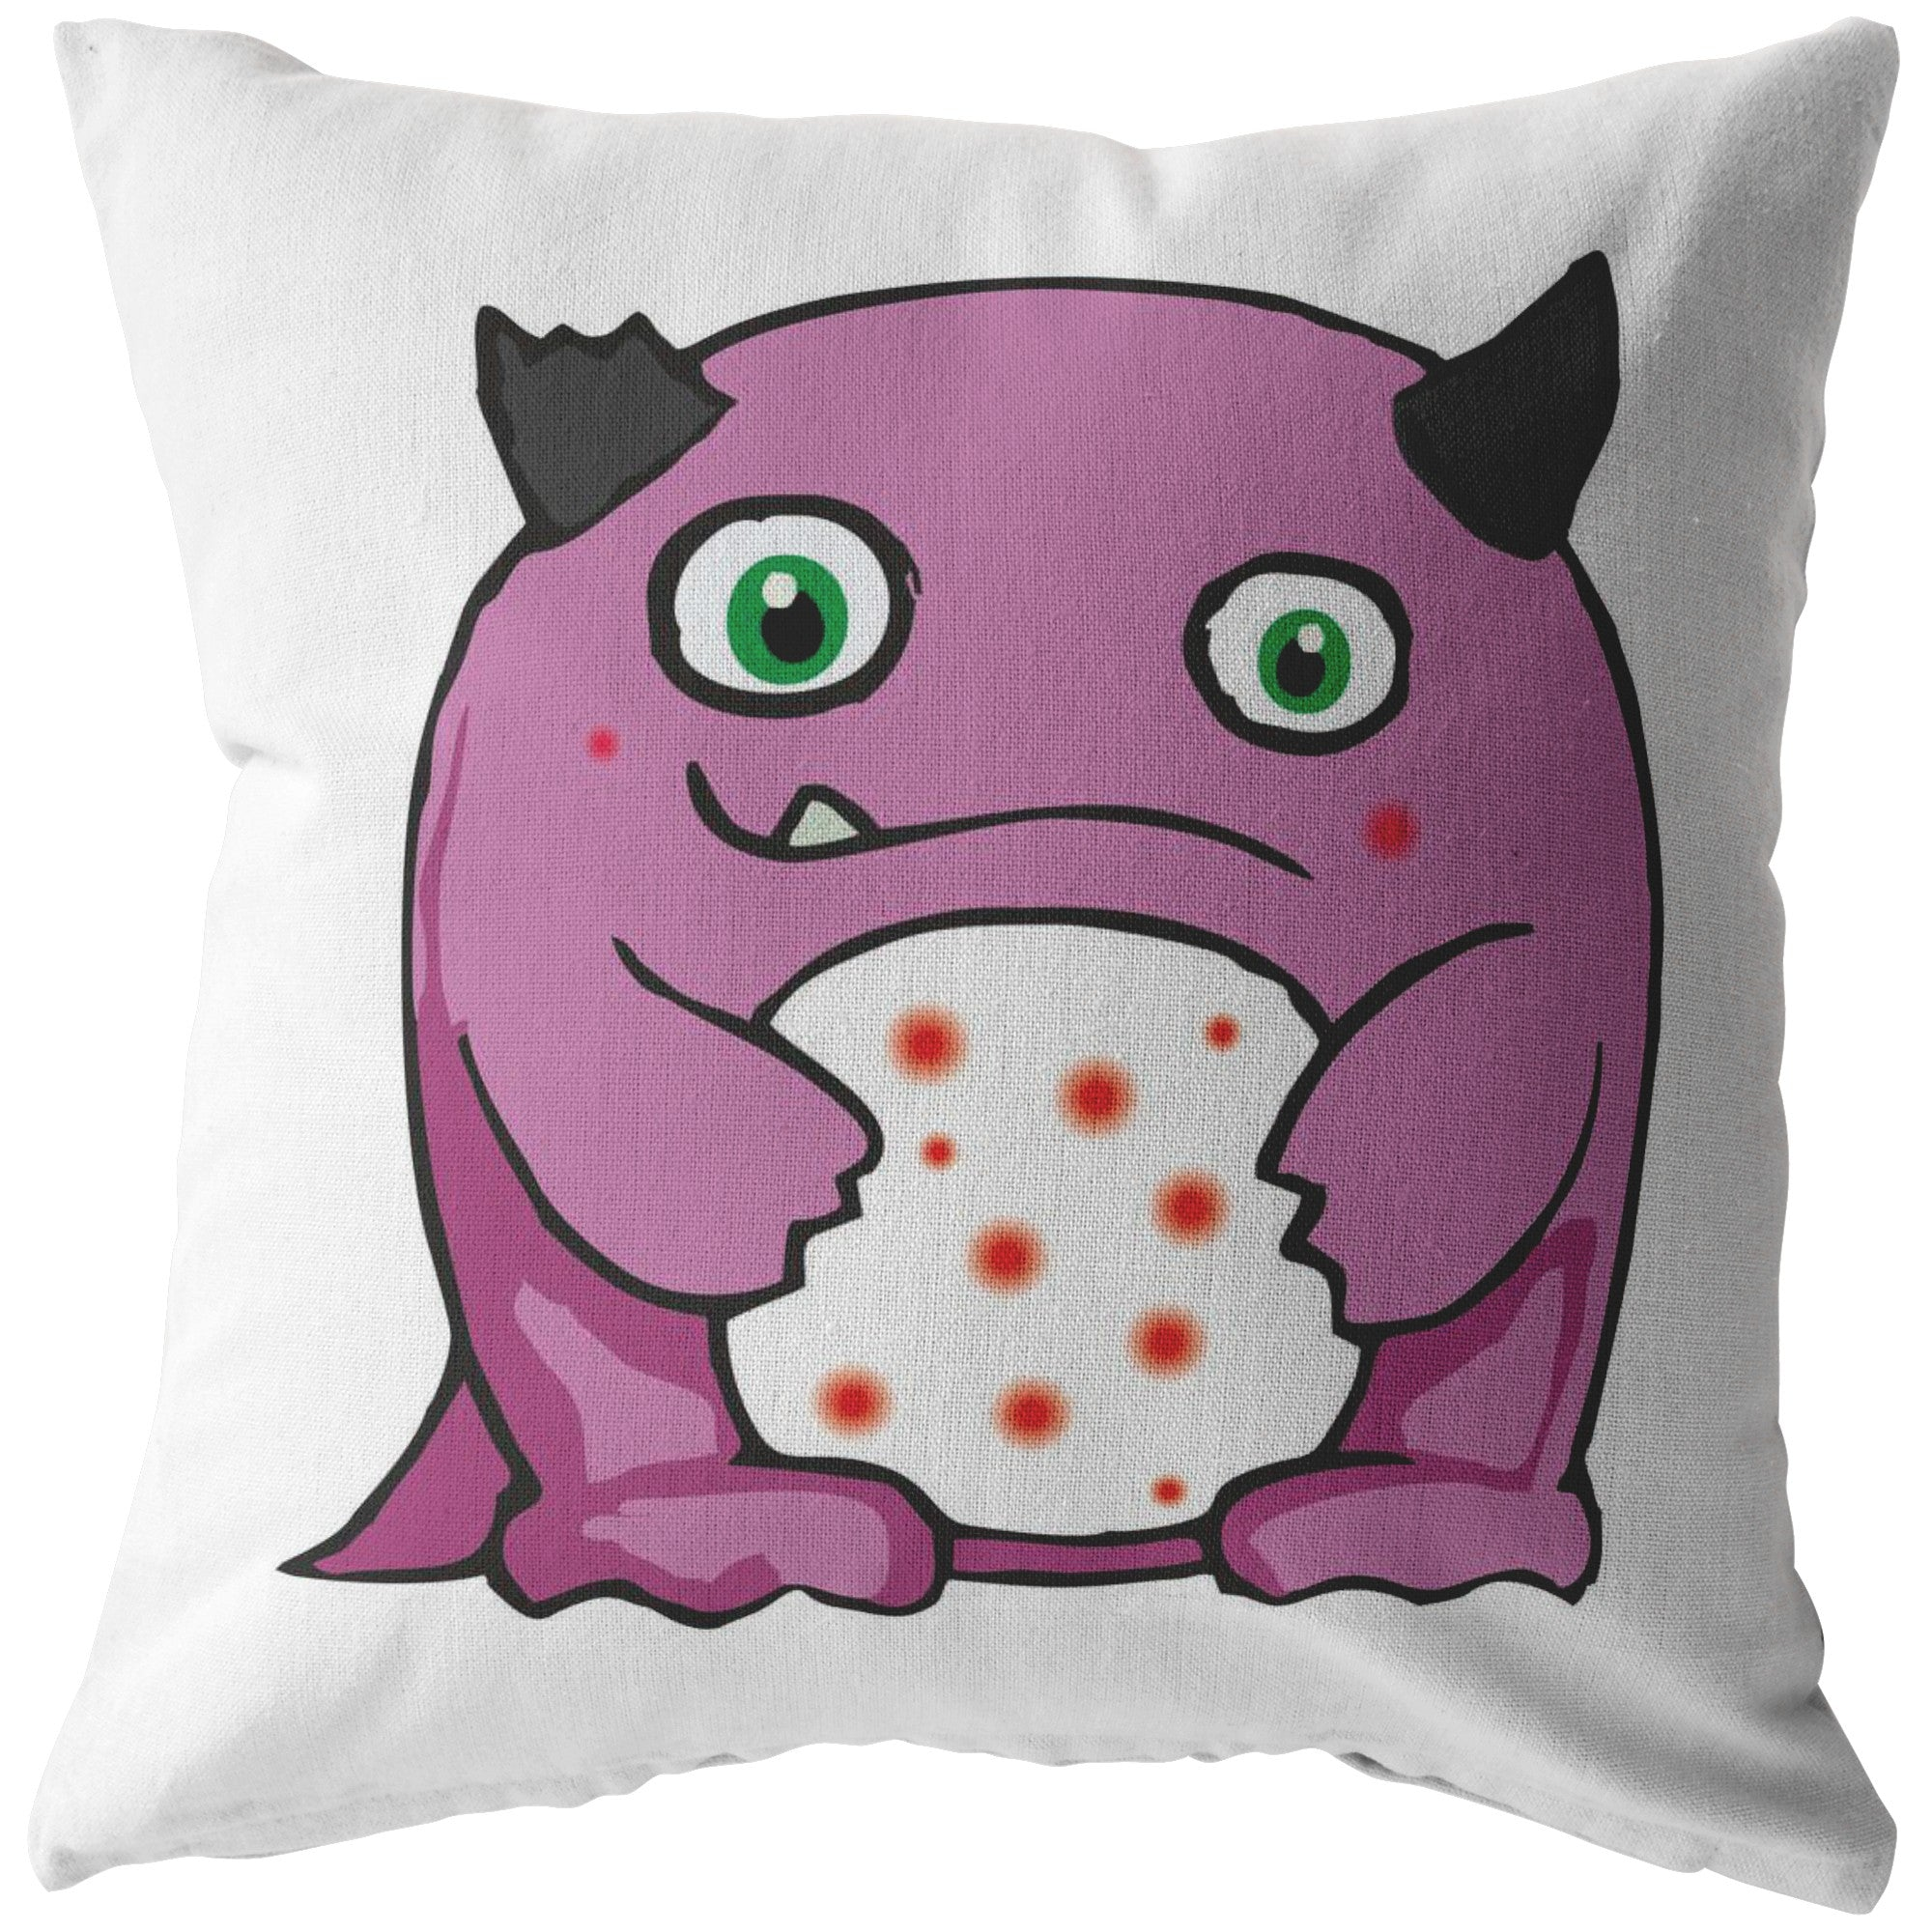 Lupus Monster Pillow - The Unchargeables